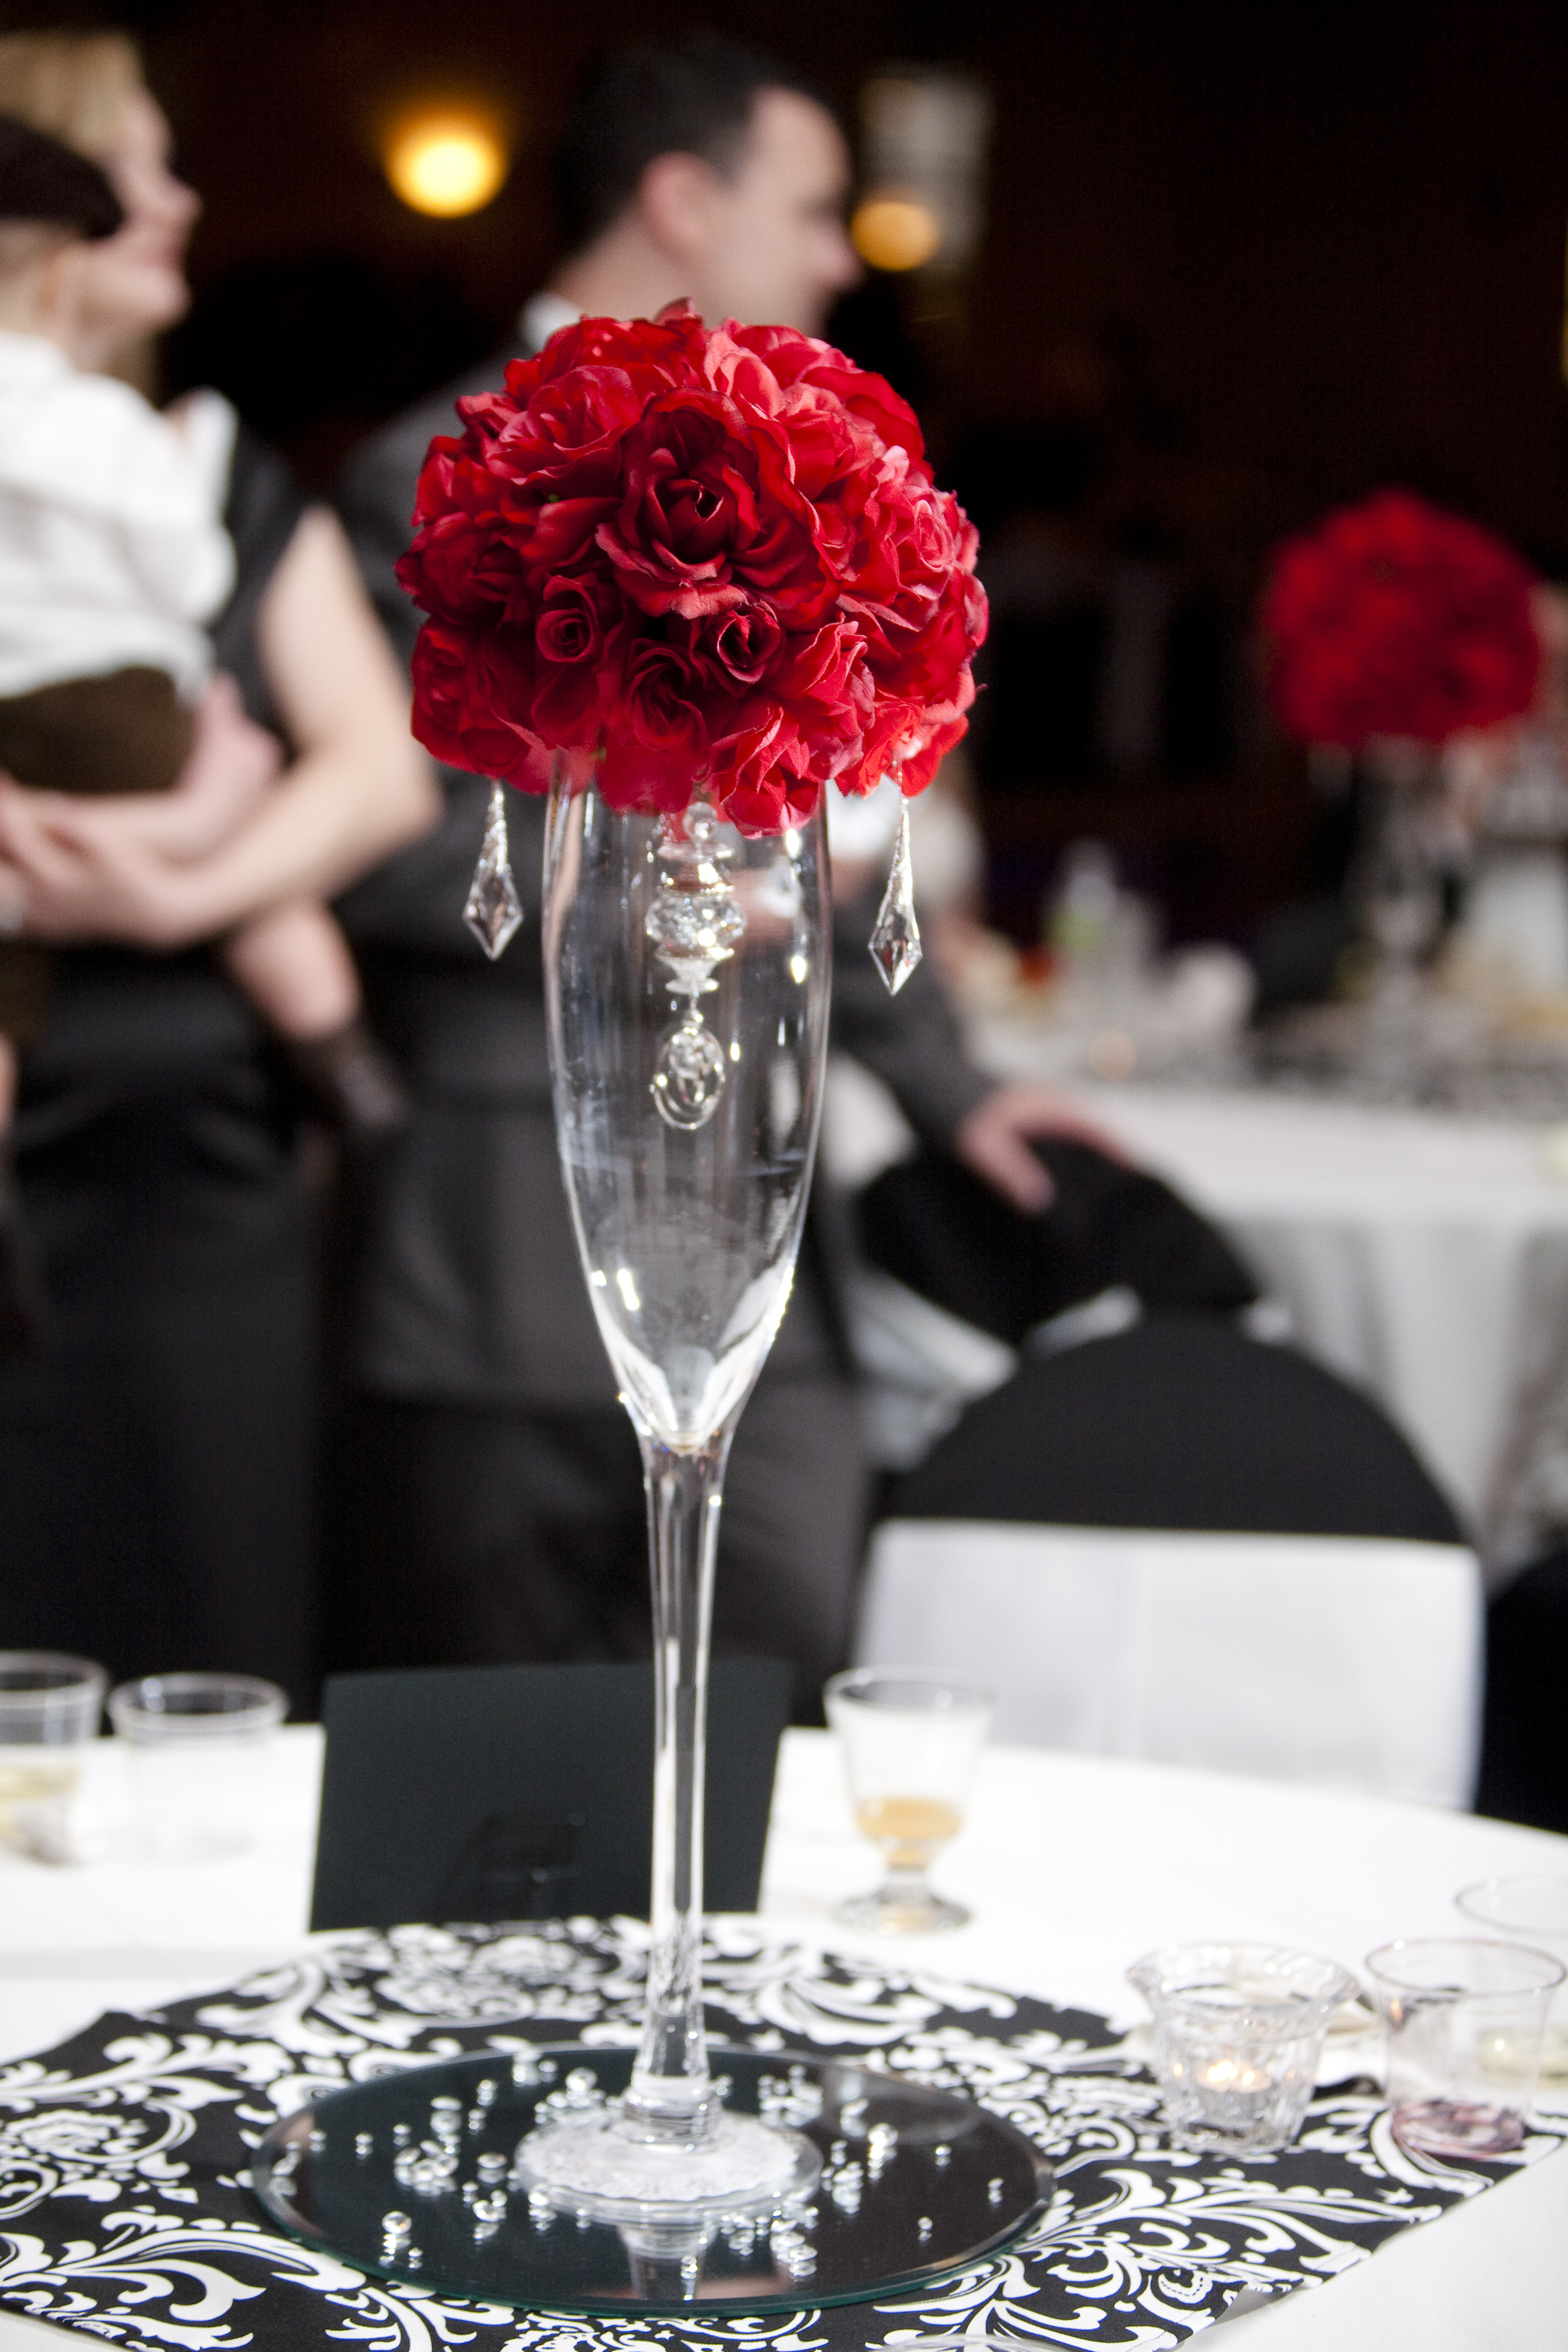 One of the centerpieces at reception project wedding